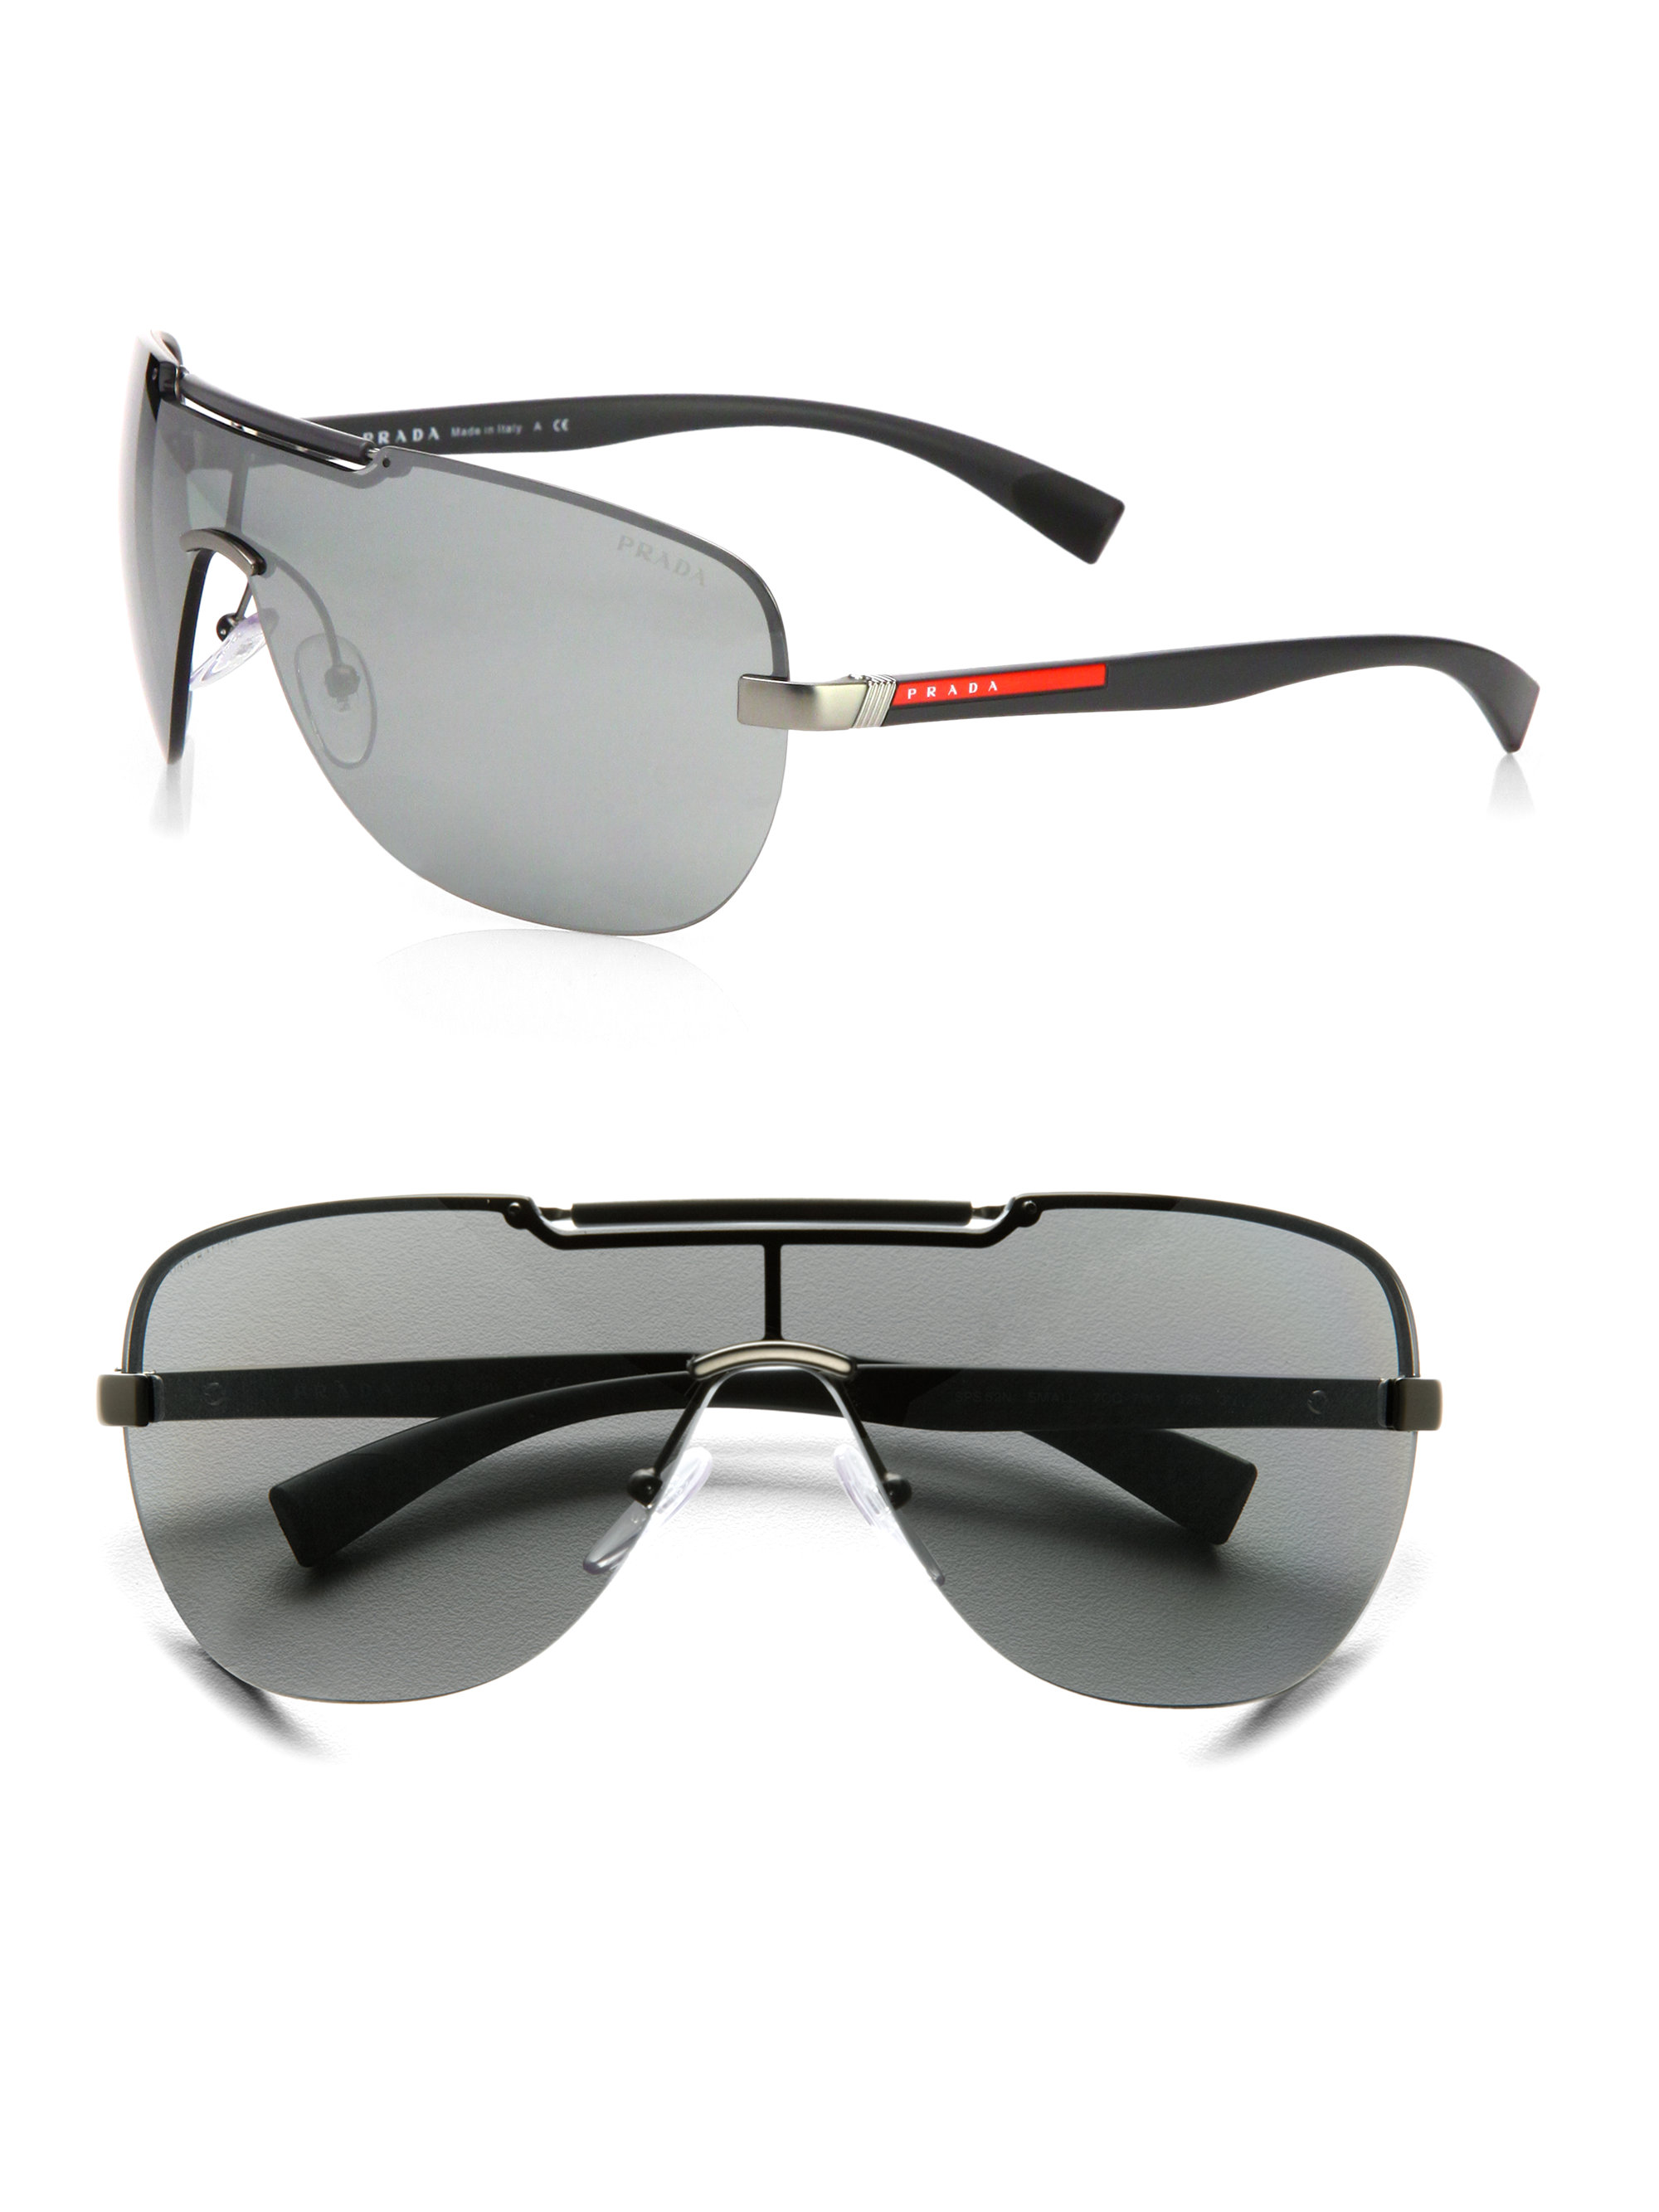 8fc89840 spain black metal prada sunglasses for men 1722a e7814